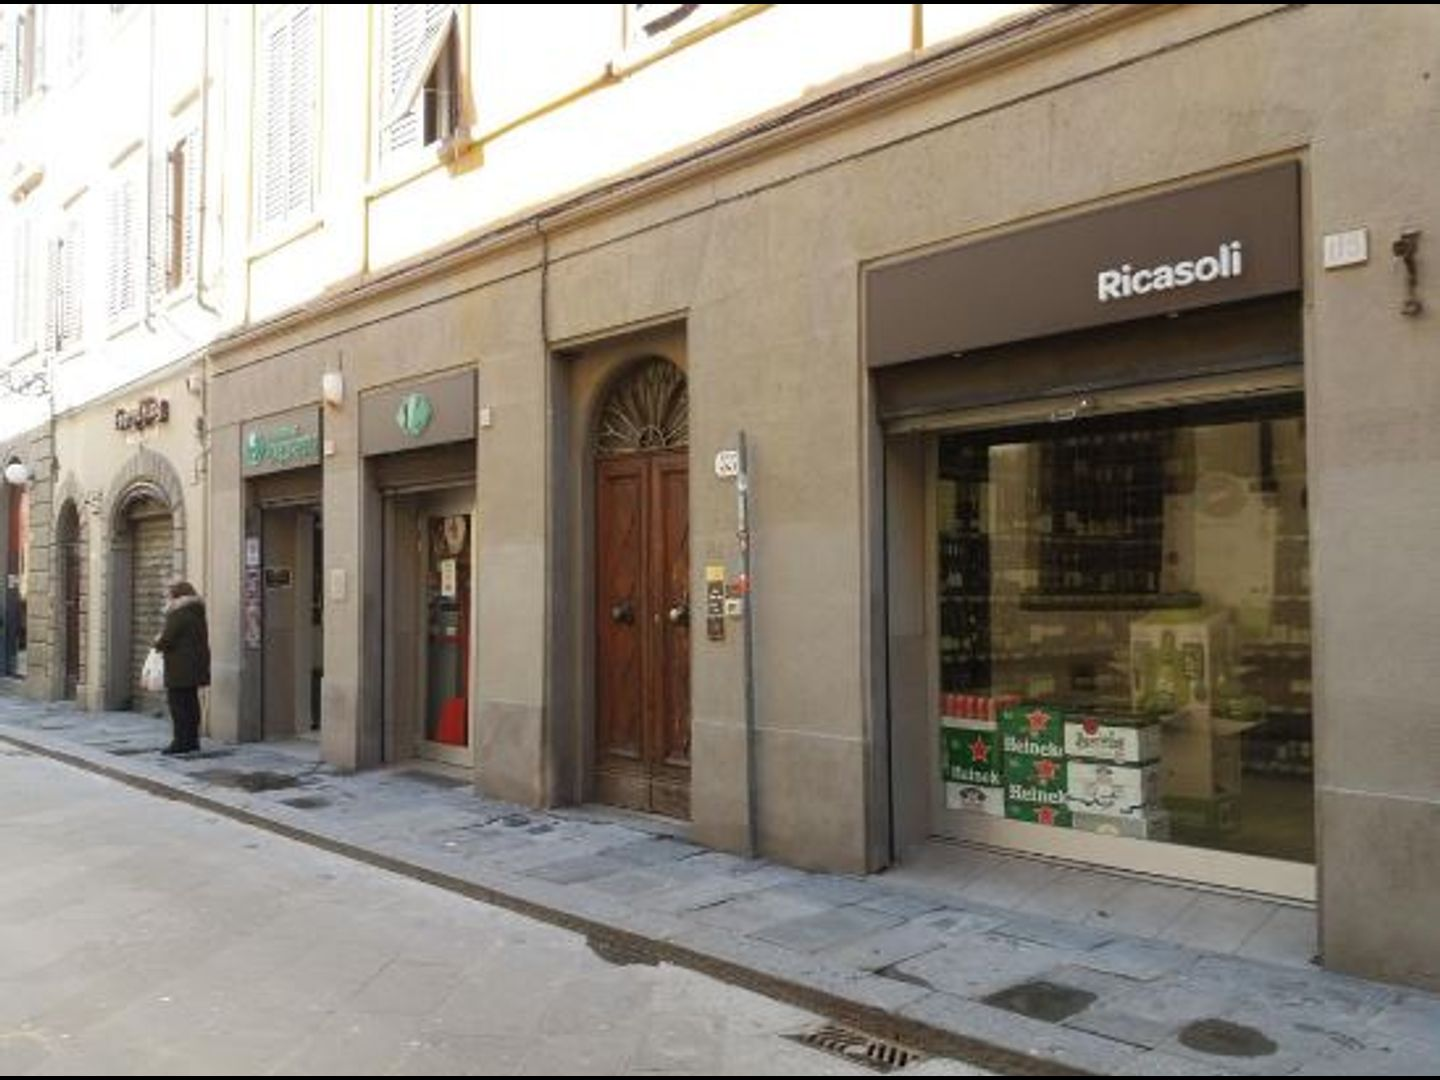 A building with a store on the side of the street at La Locanda dell'Accademia.